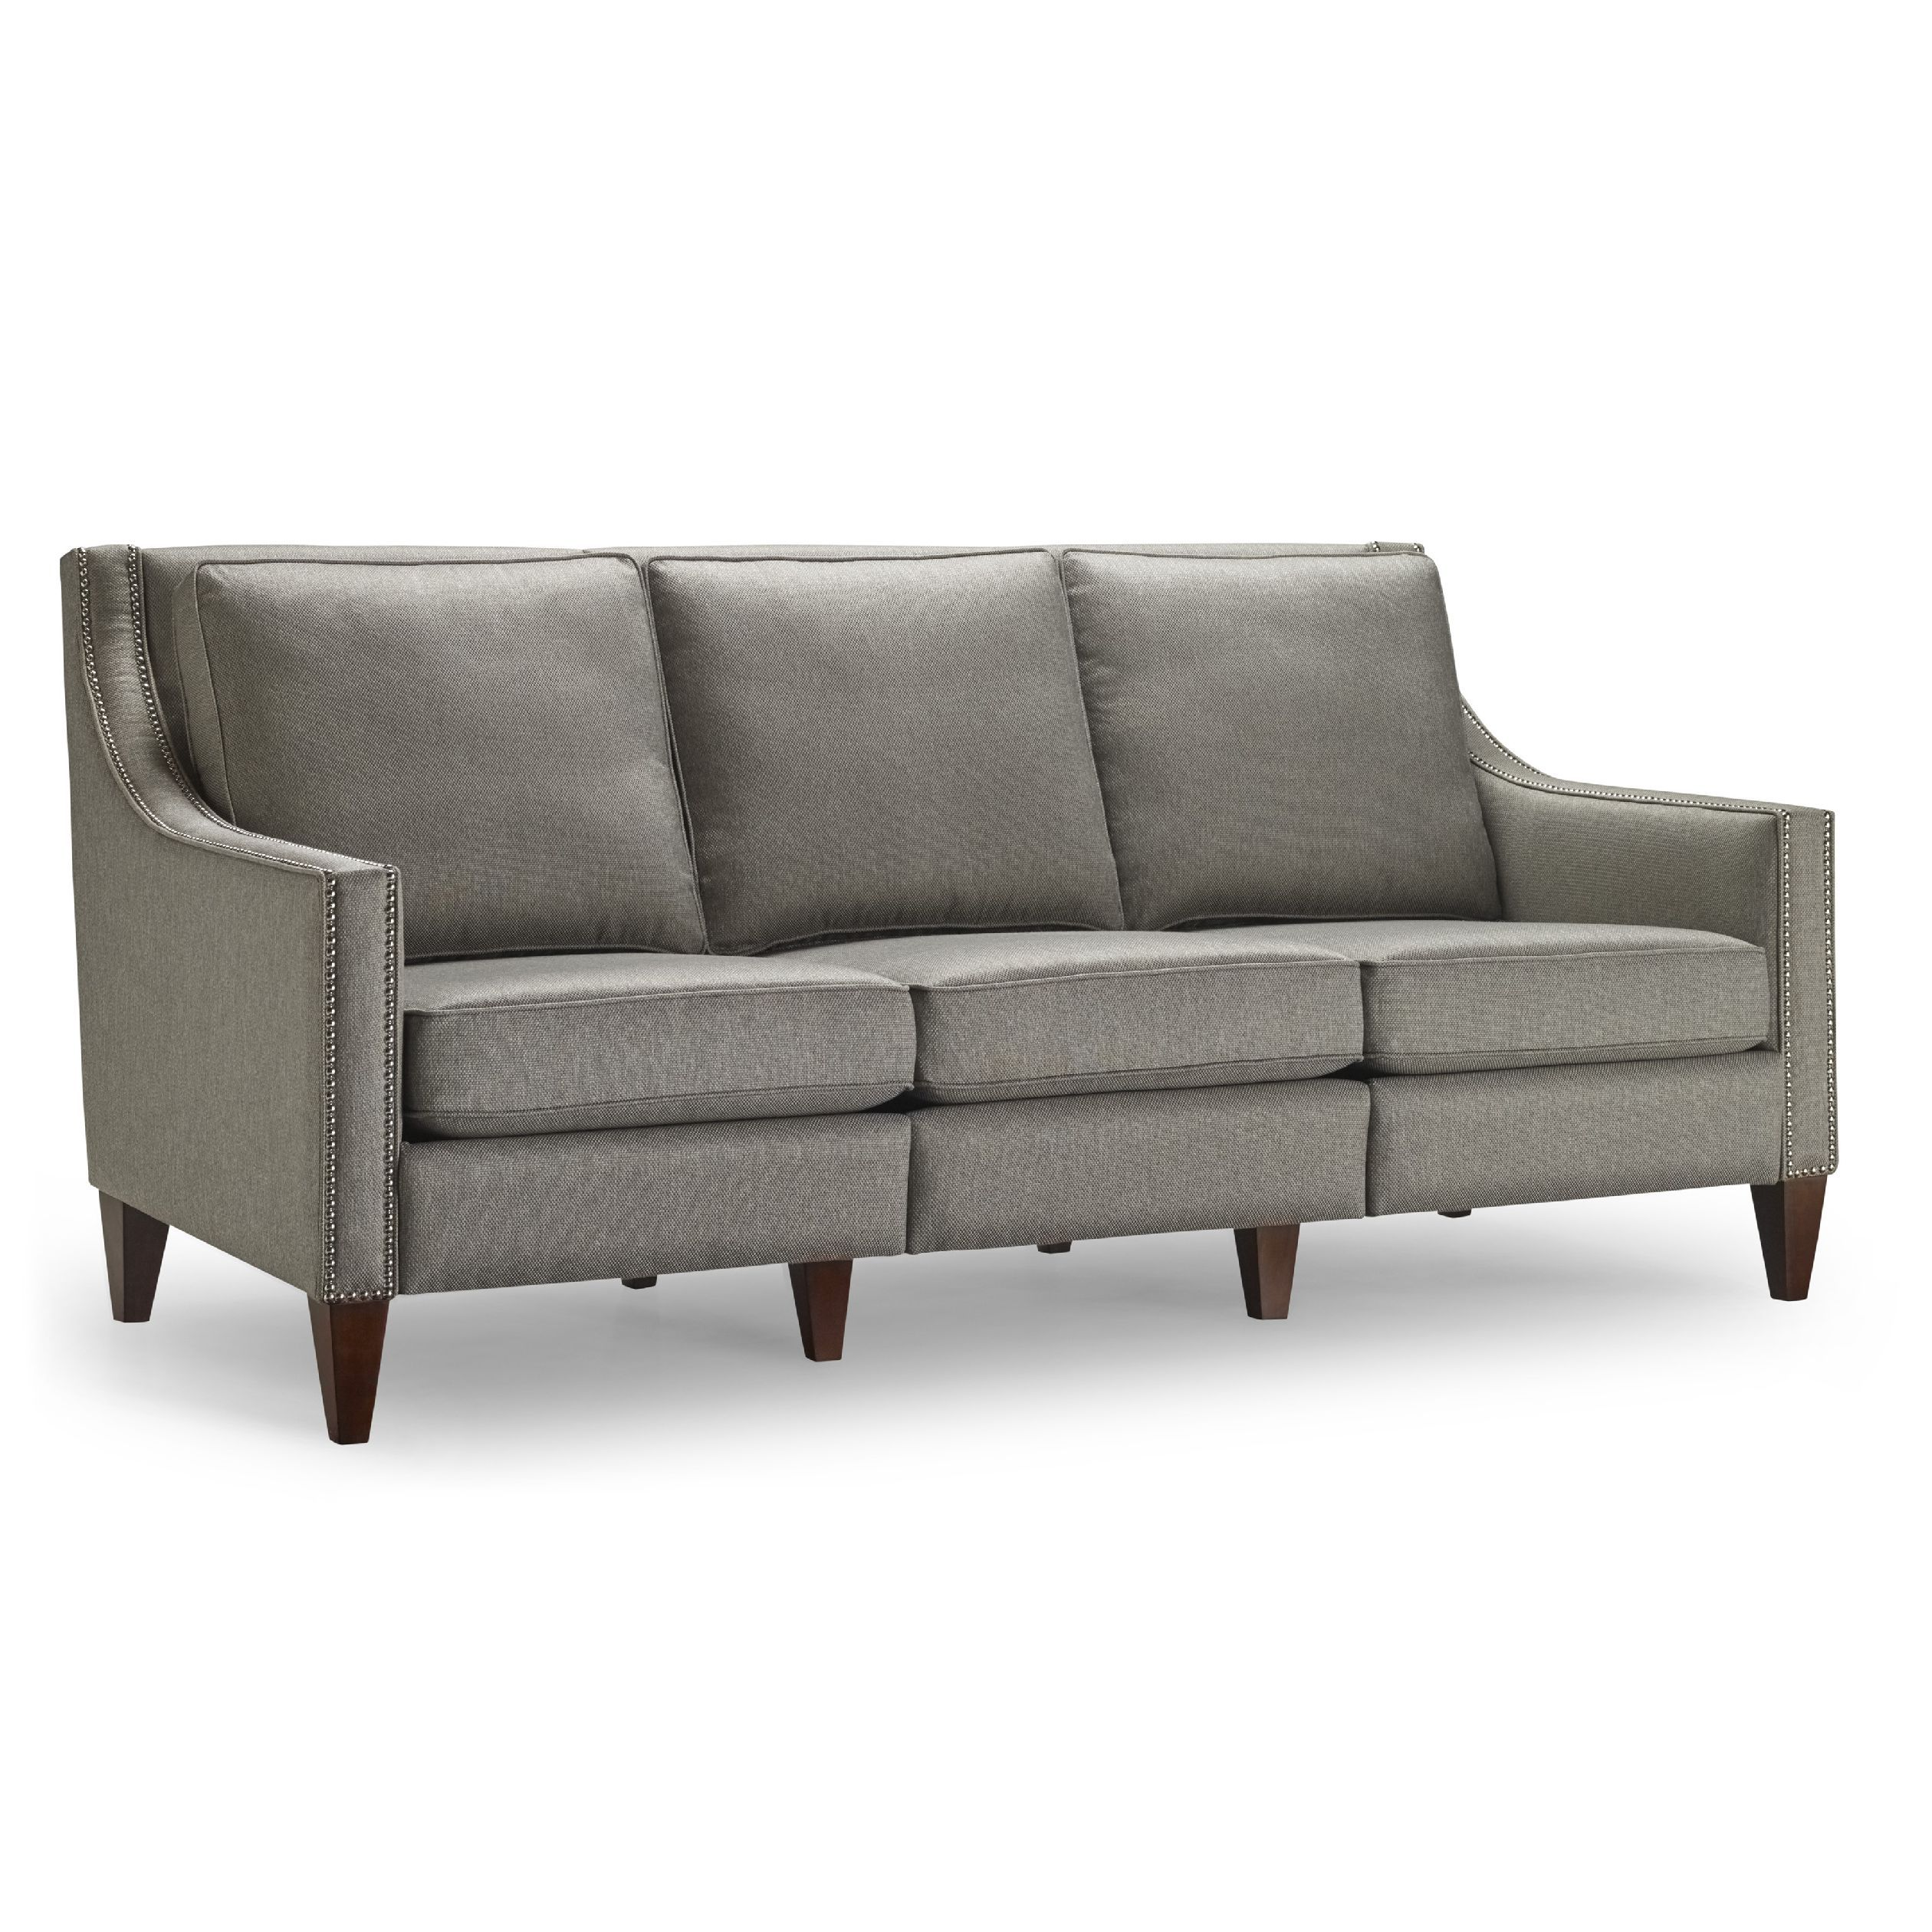 Homeware Peyton Sofa Buy Sofas Online Ebay Nickel Furniture Decor And A New Way To Look At Your Experience